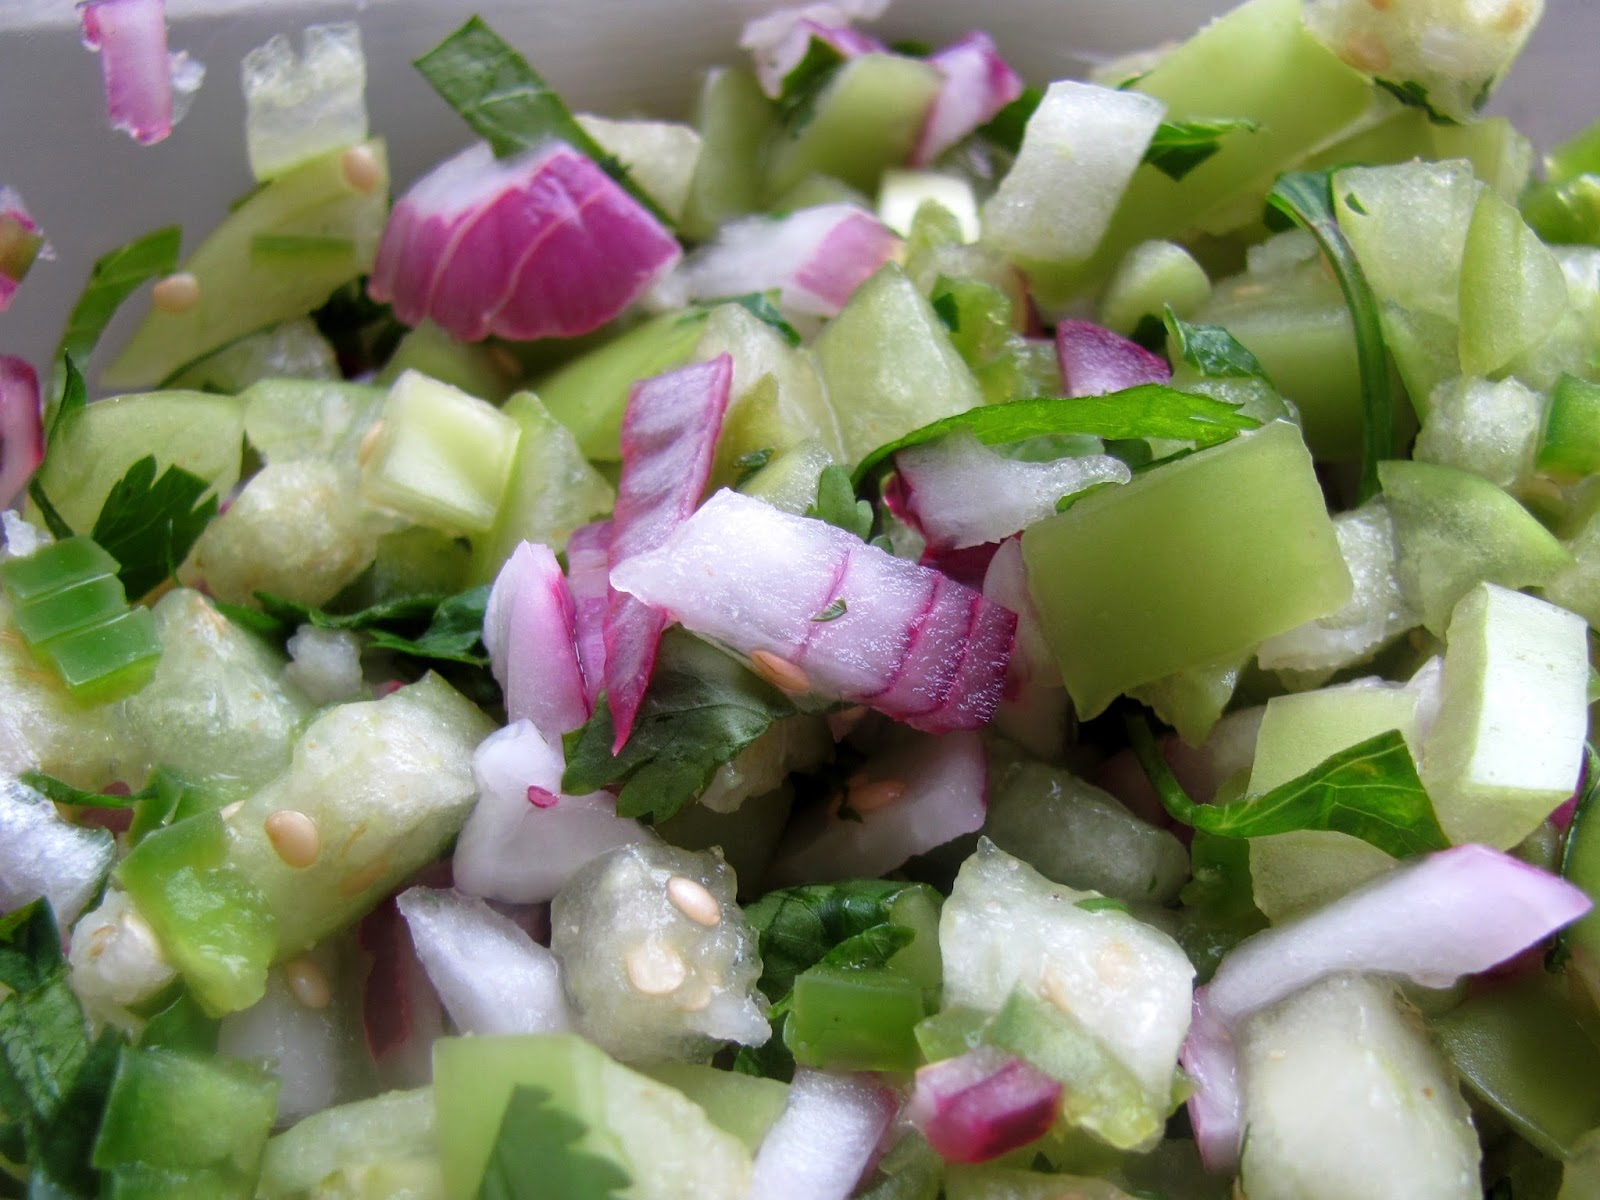 de gallo verde apple pico de gallo tomatillo pico de gallo น้ำ ...